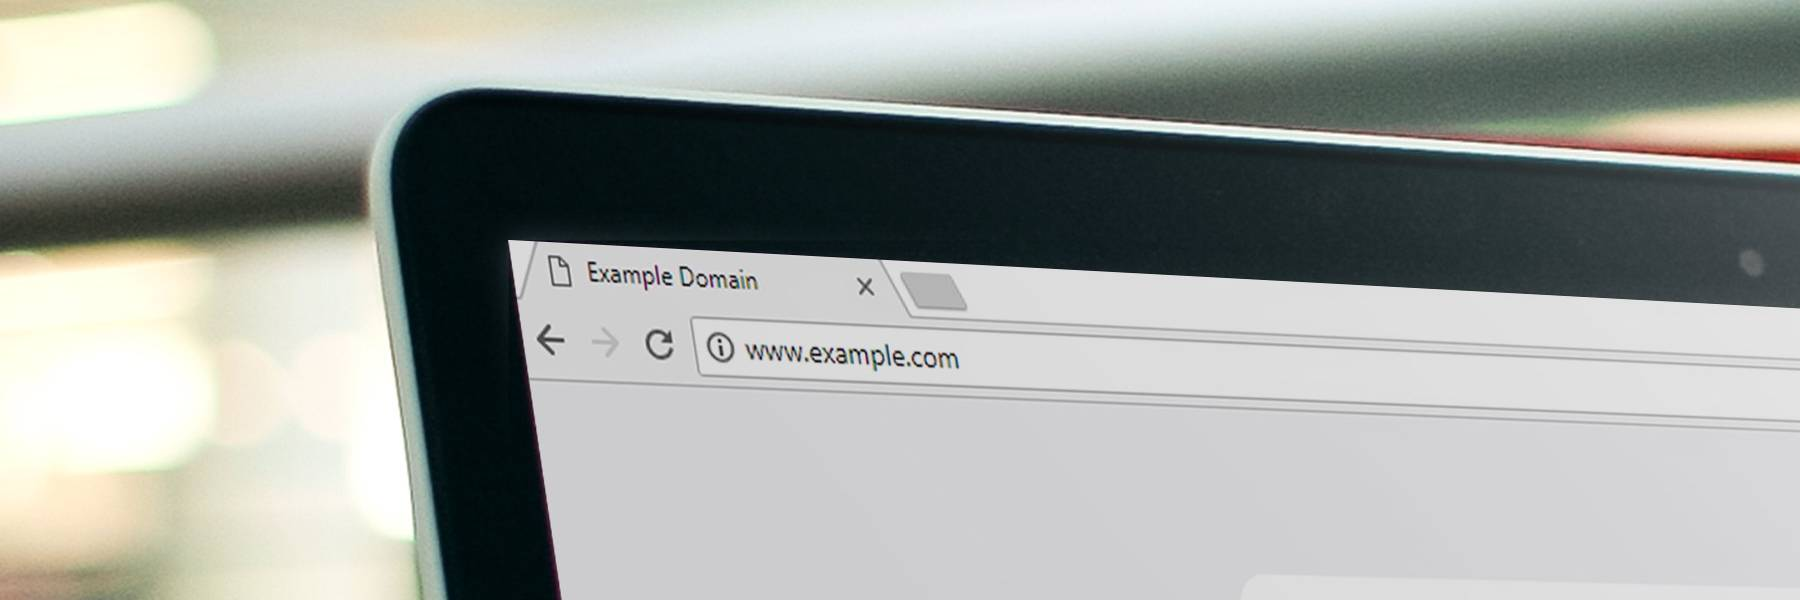 Example domain name shown on laptop